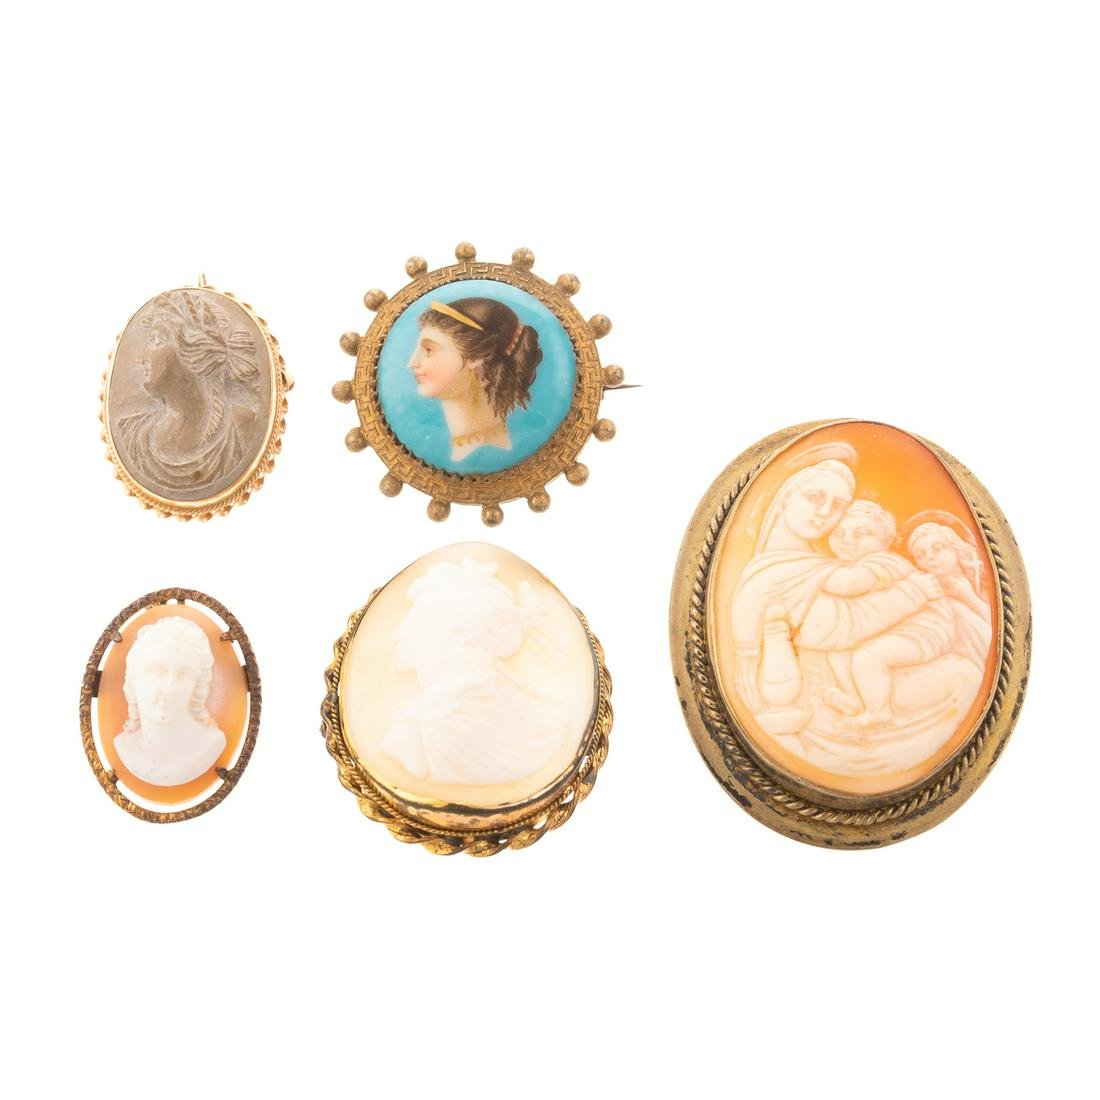 A Collection of Cameos & Hand Painted Brooches